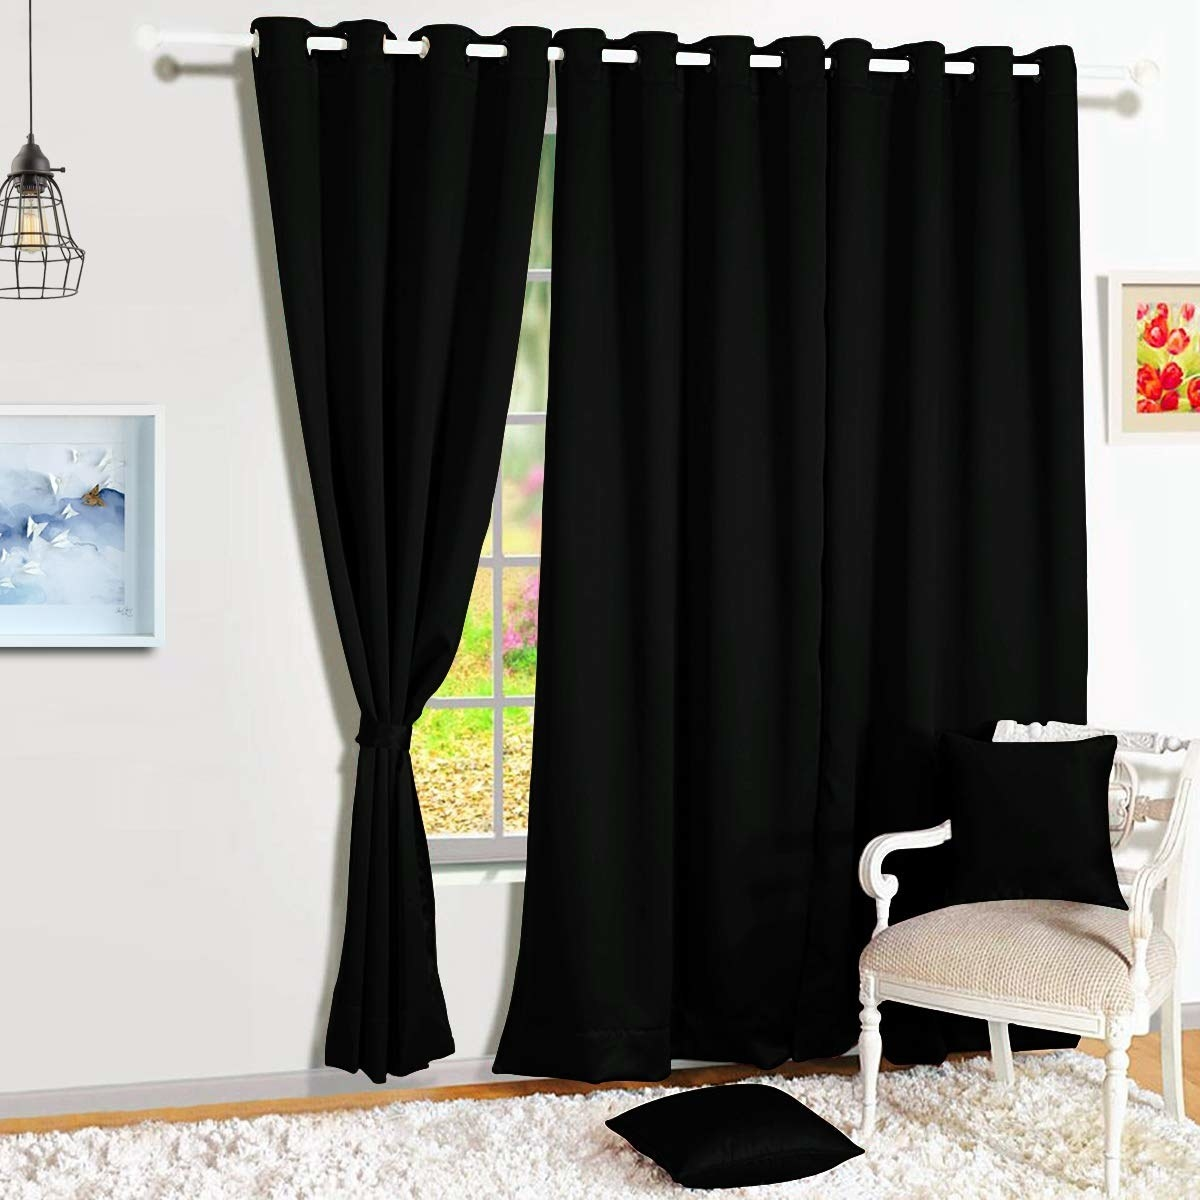 A set of blackout curtains